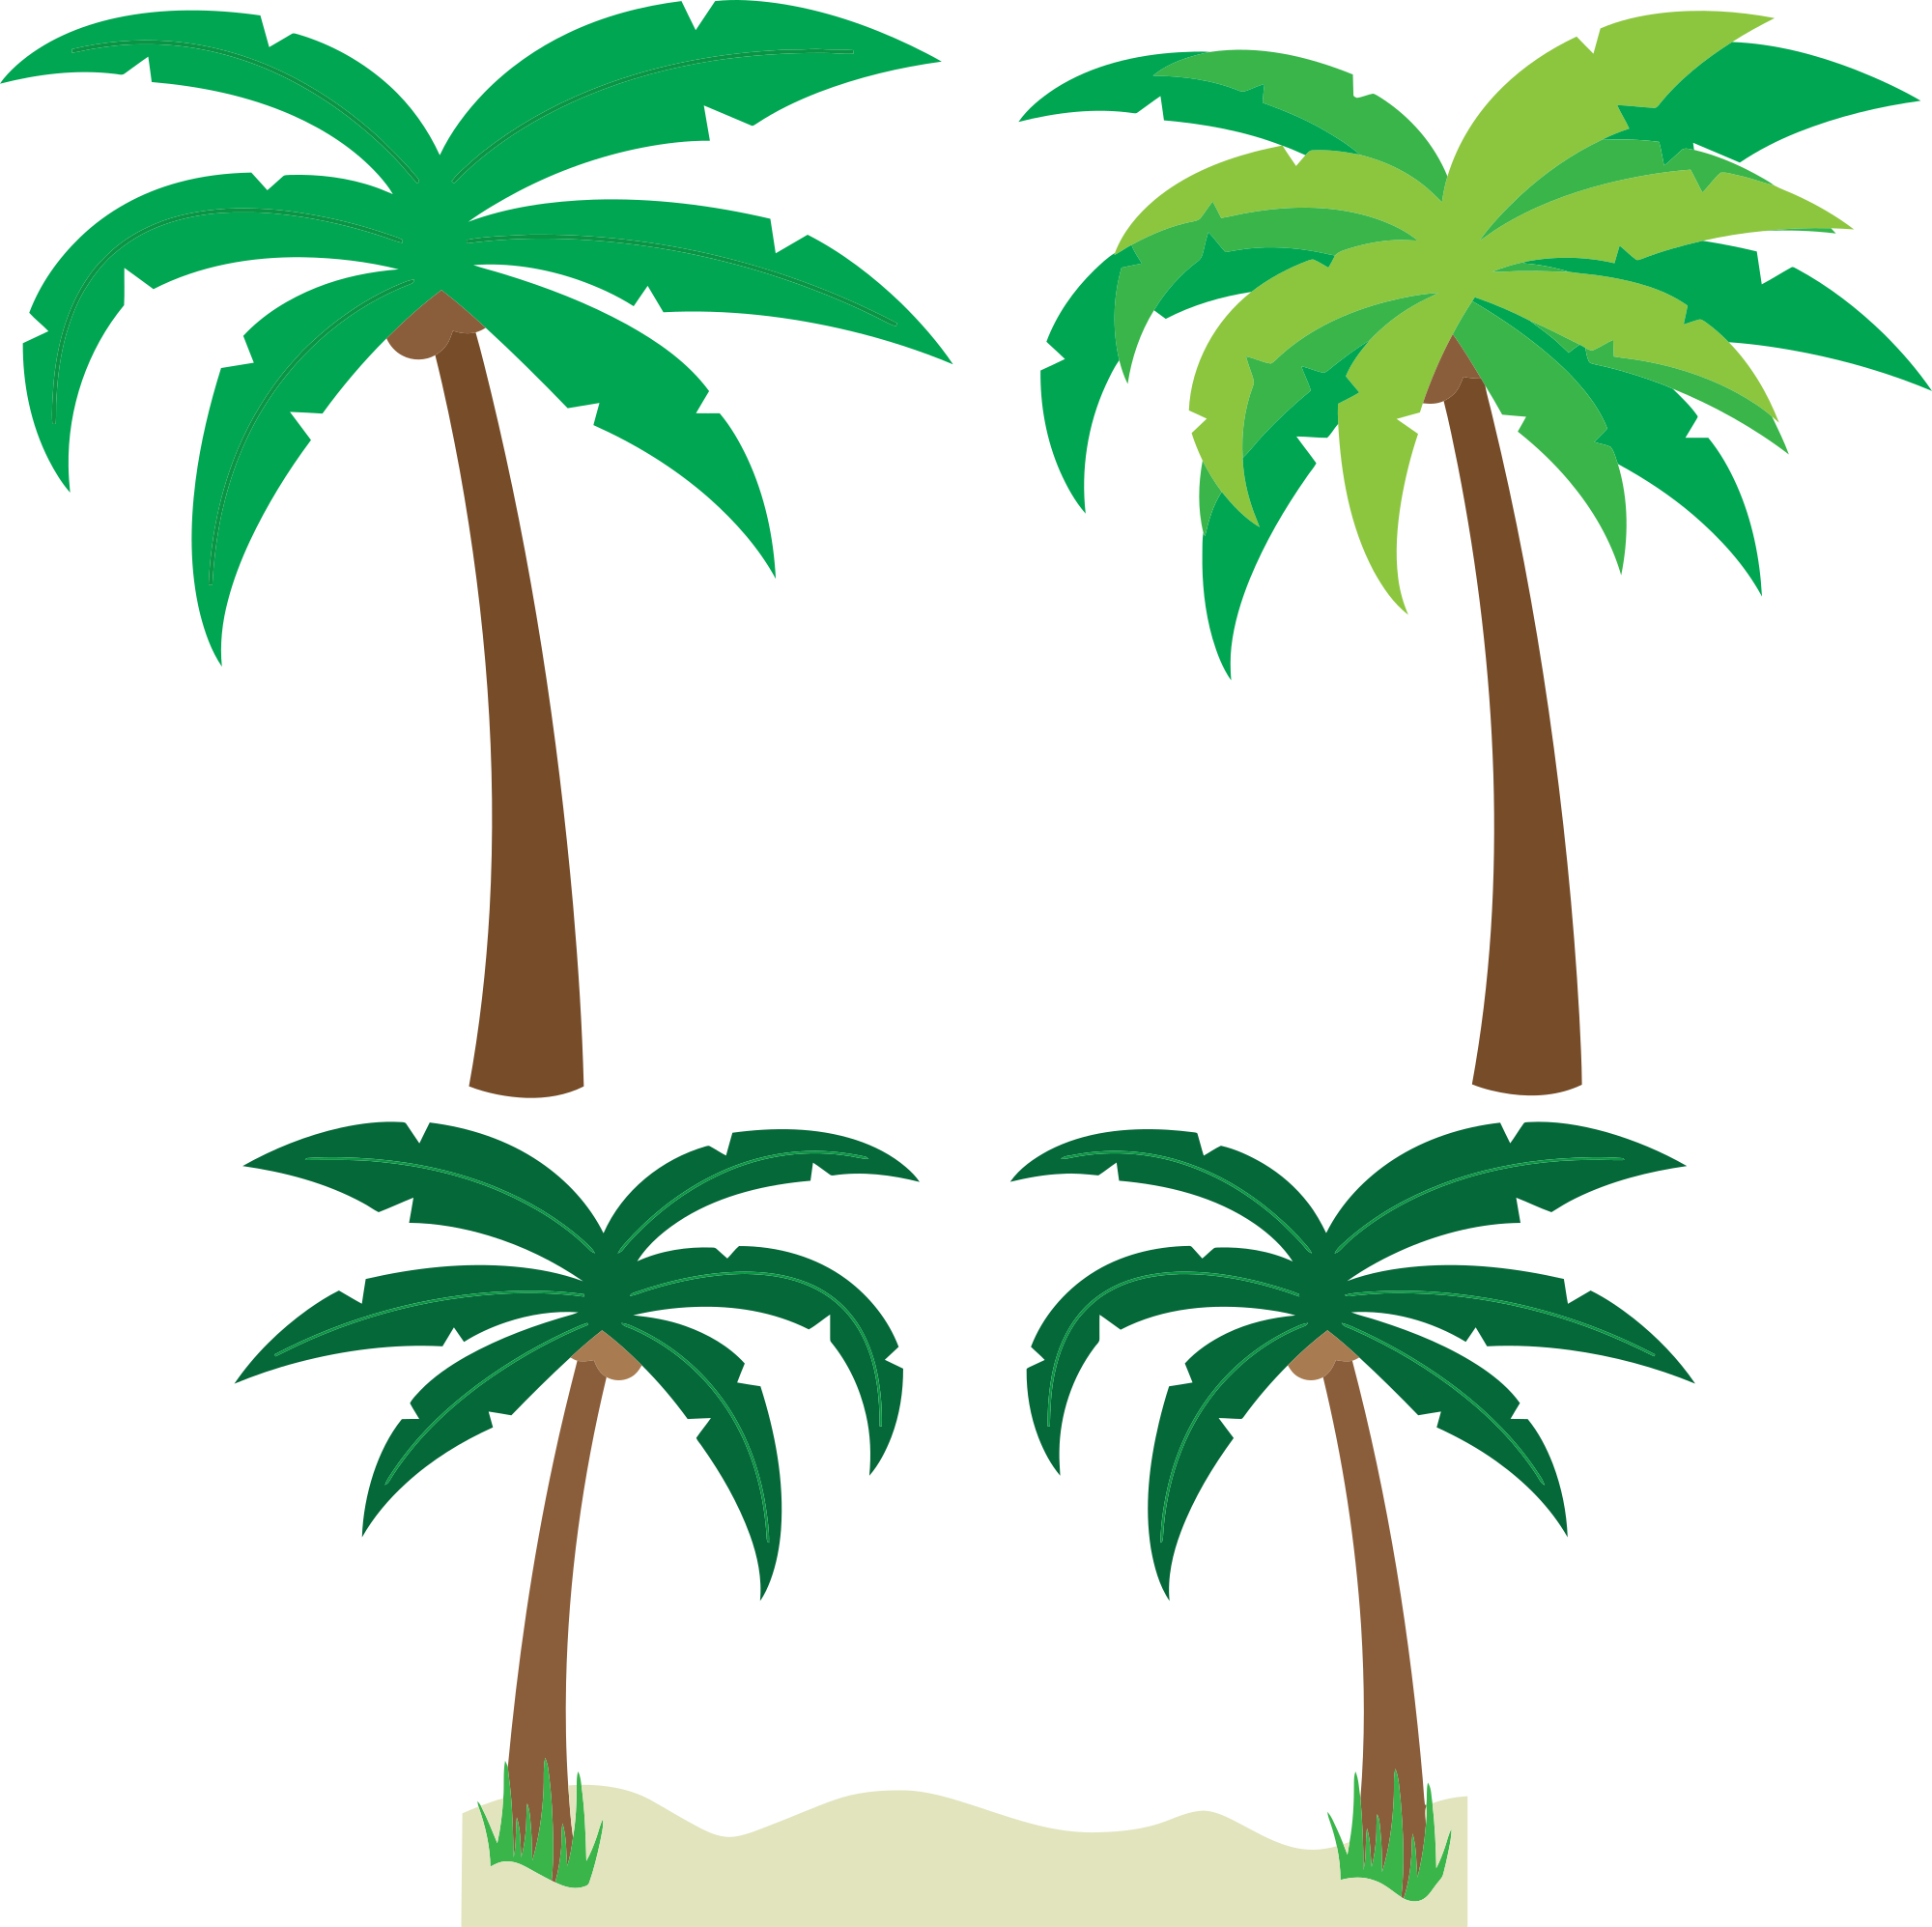 2000x1995 Palm Tree Art Tropical Palm Trees Clip Art Clip Art Palm Tree 5 3